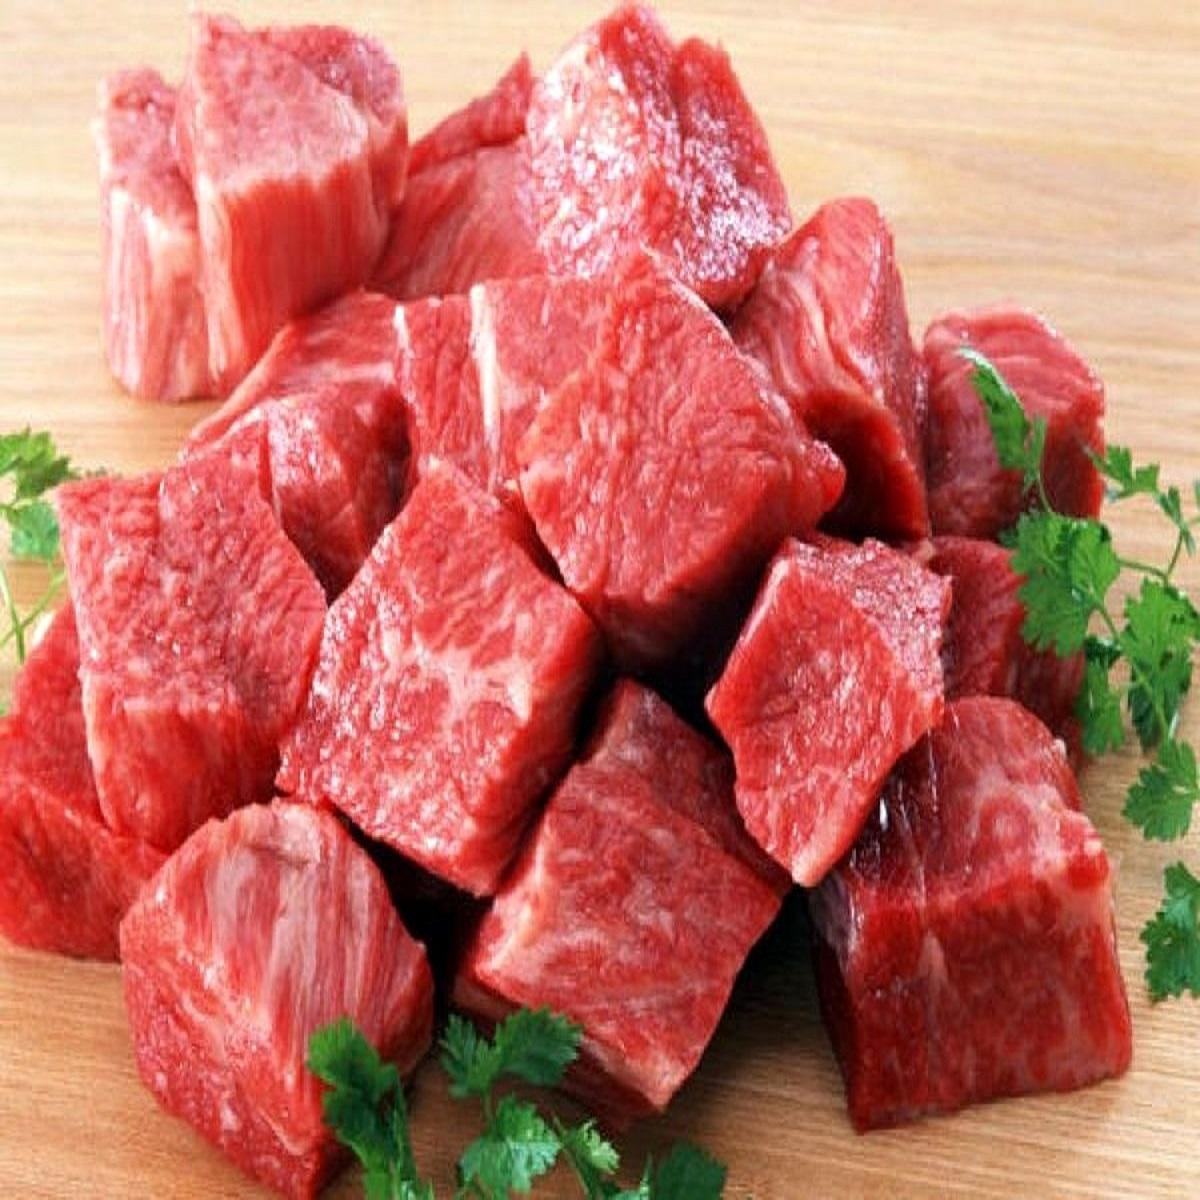 FRESH KANGAROO MEAT FOR AFFORDABLE PRICE